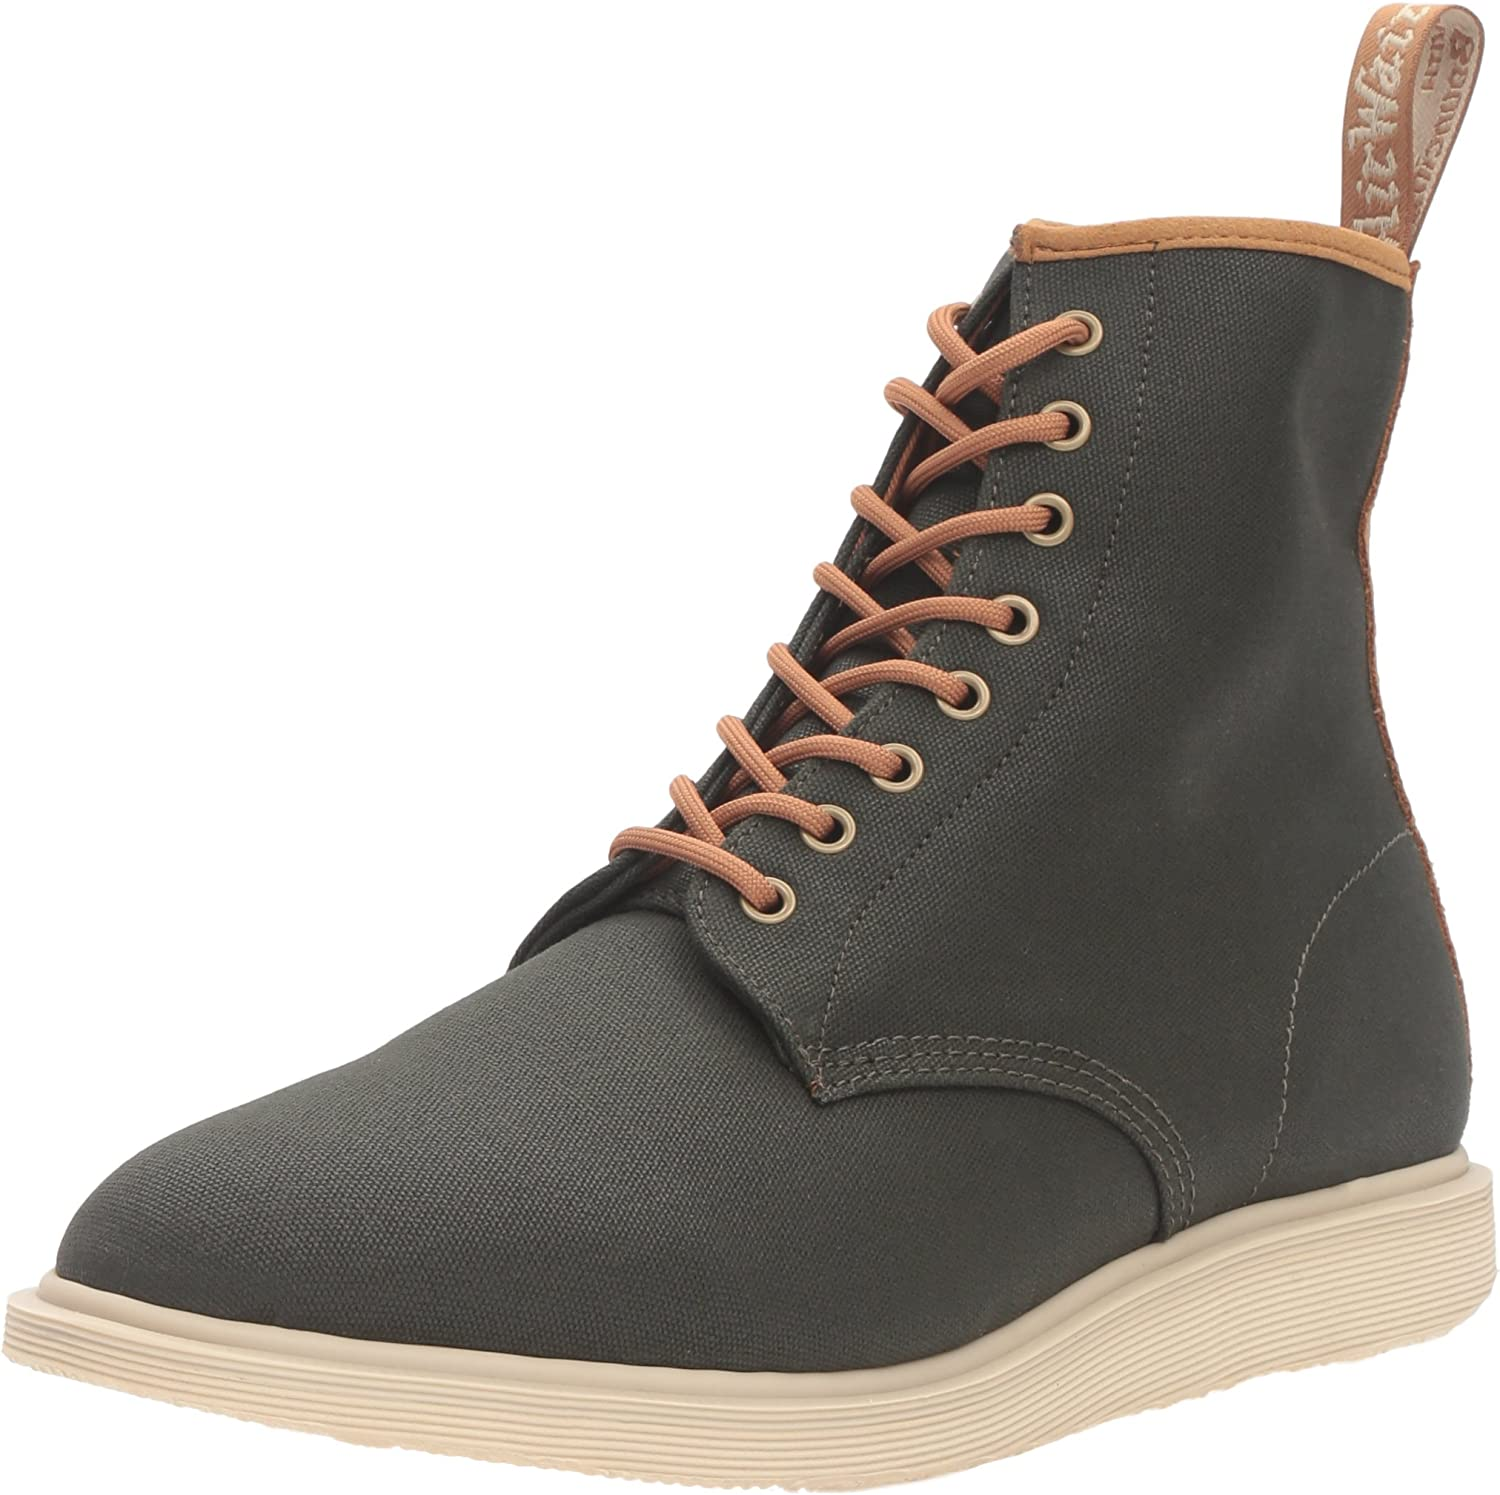 D1684 (without scatola) sautope da ginnastica donna DR MARTENS WHITON sautope verde sautope donna